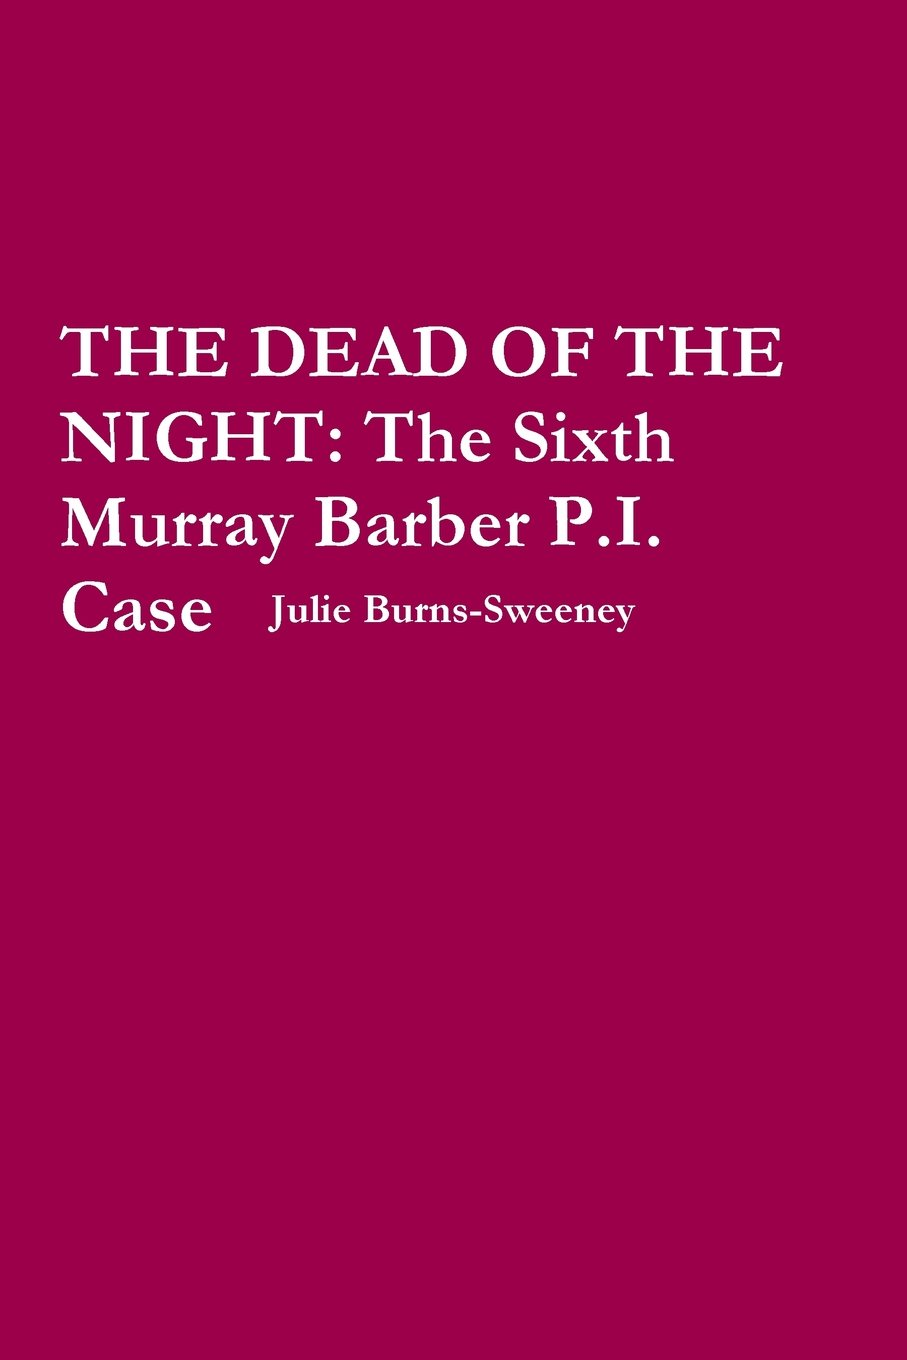 Download The Dead of the Night : The Sixth Murray Barber P.I. Case pdf